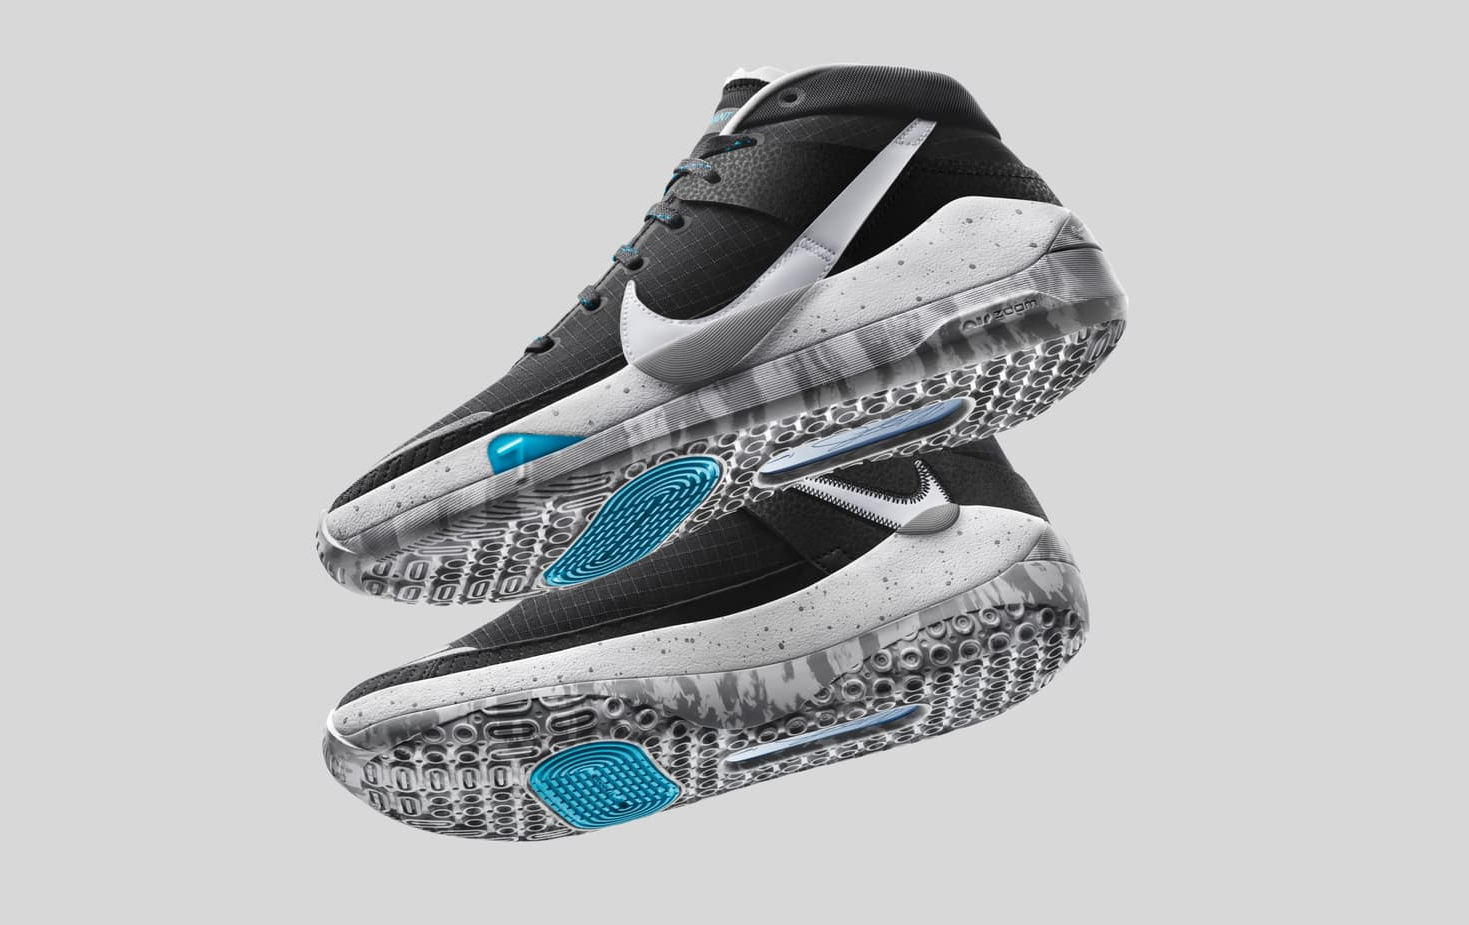 Nike KD 13 official